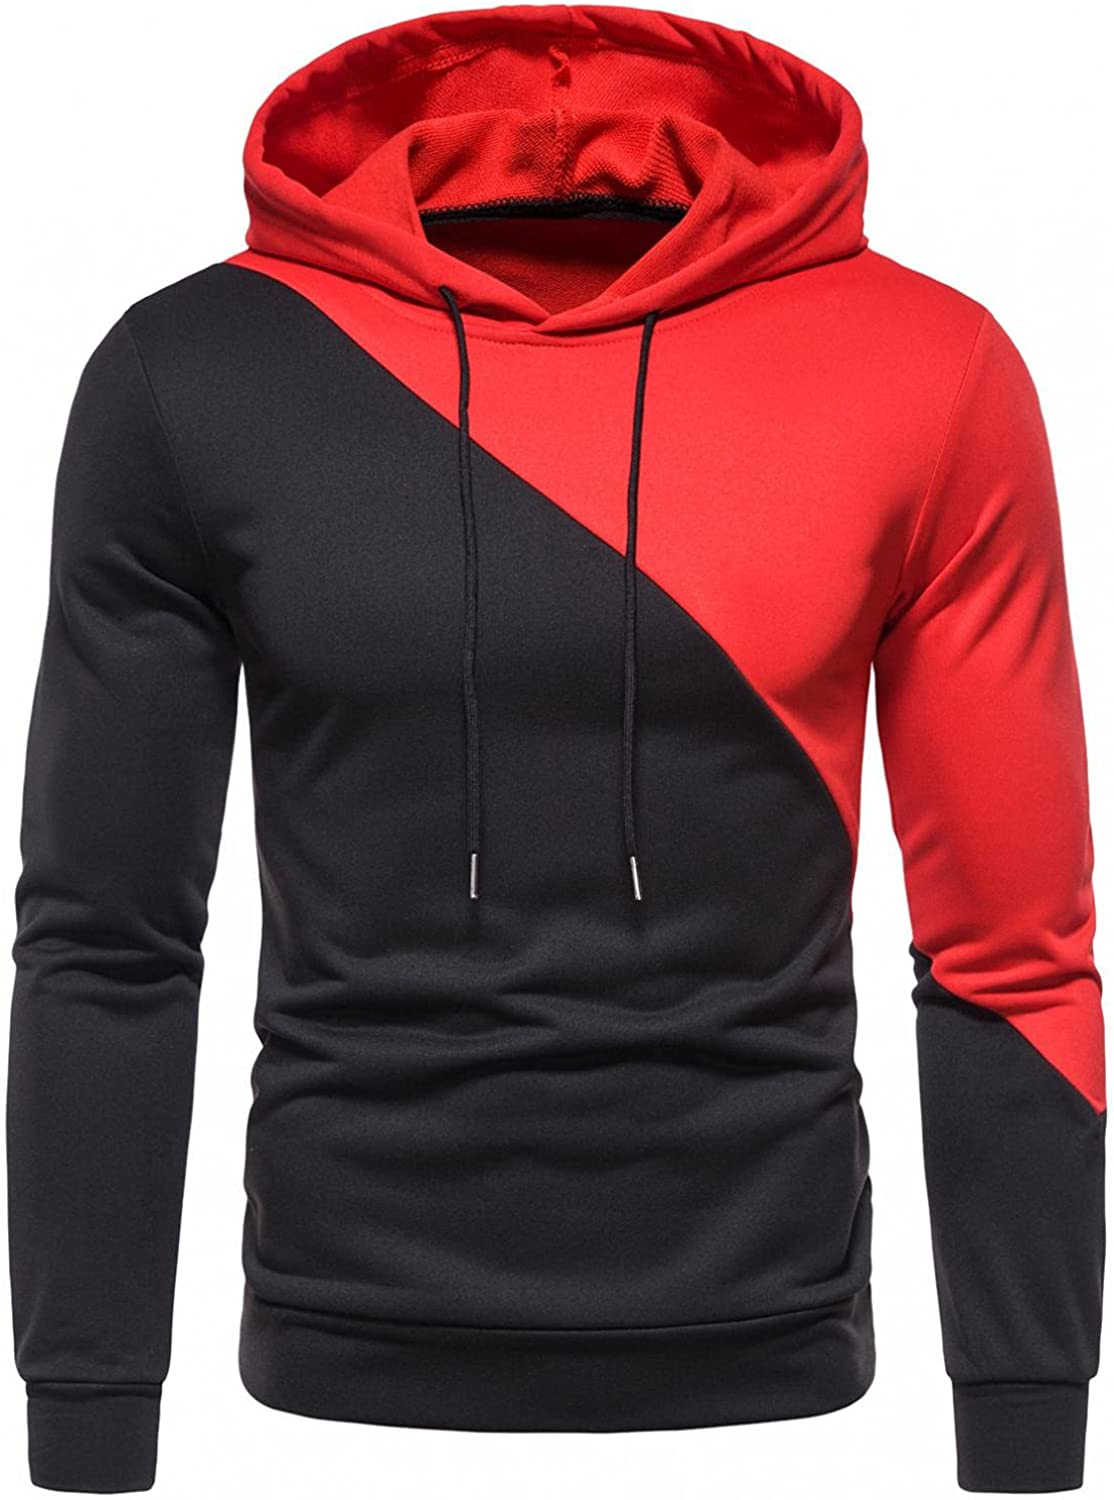 Sweatshirts for Men Pullover Long Sleeve Pullover Slim Fit Patchwork Athletic Sweatshirt Gym Hooded Tops Coats with Pockets